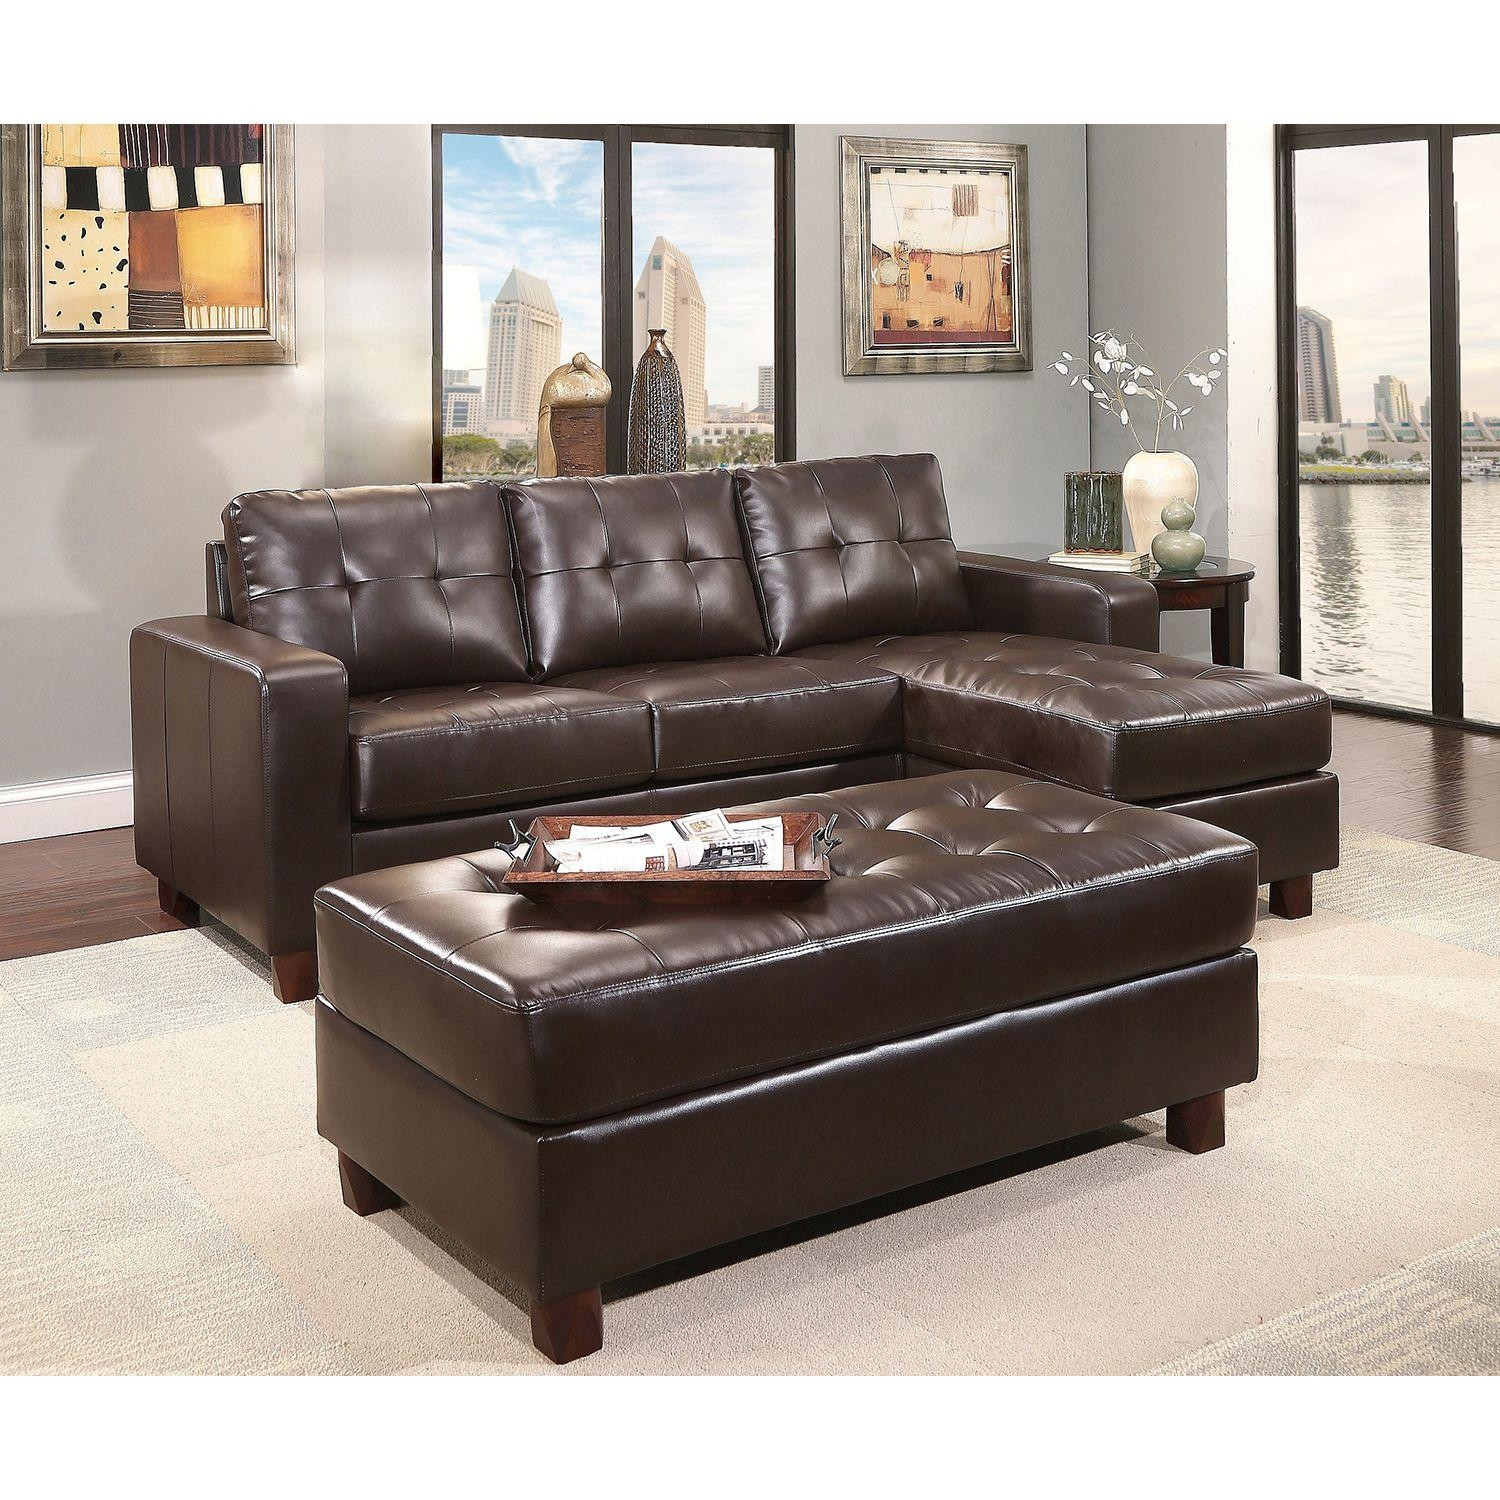 Interior: Luxury Oversized Sectional Sofa For Awesome Living Room Within Sectional With Large Ottoman (Image 7 of 20)